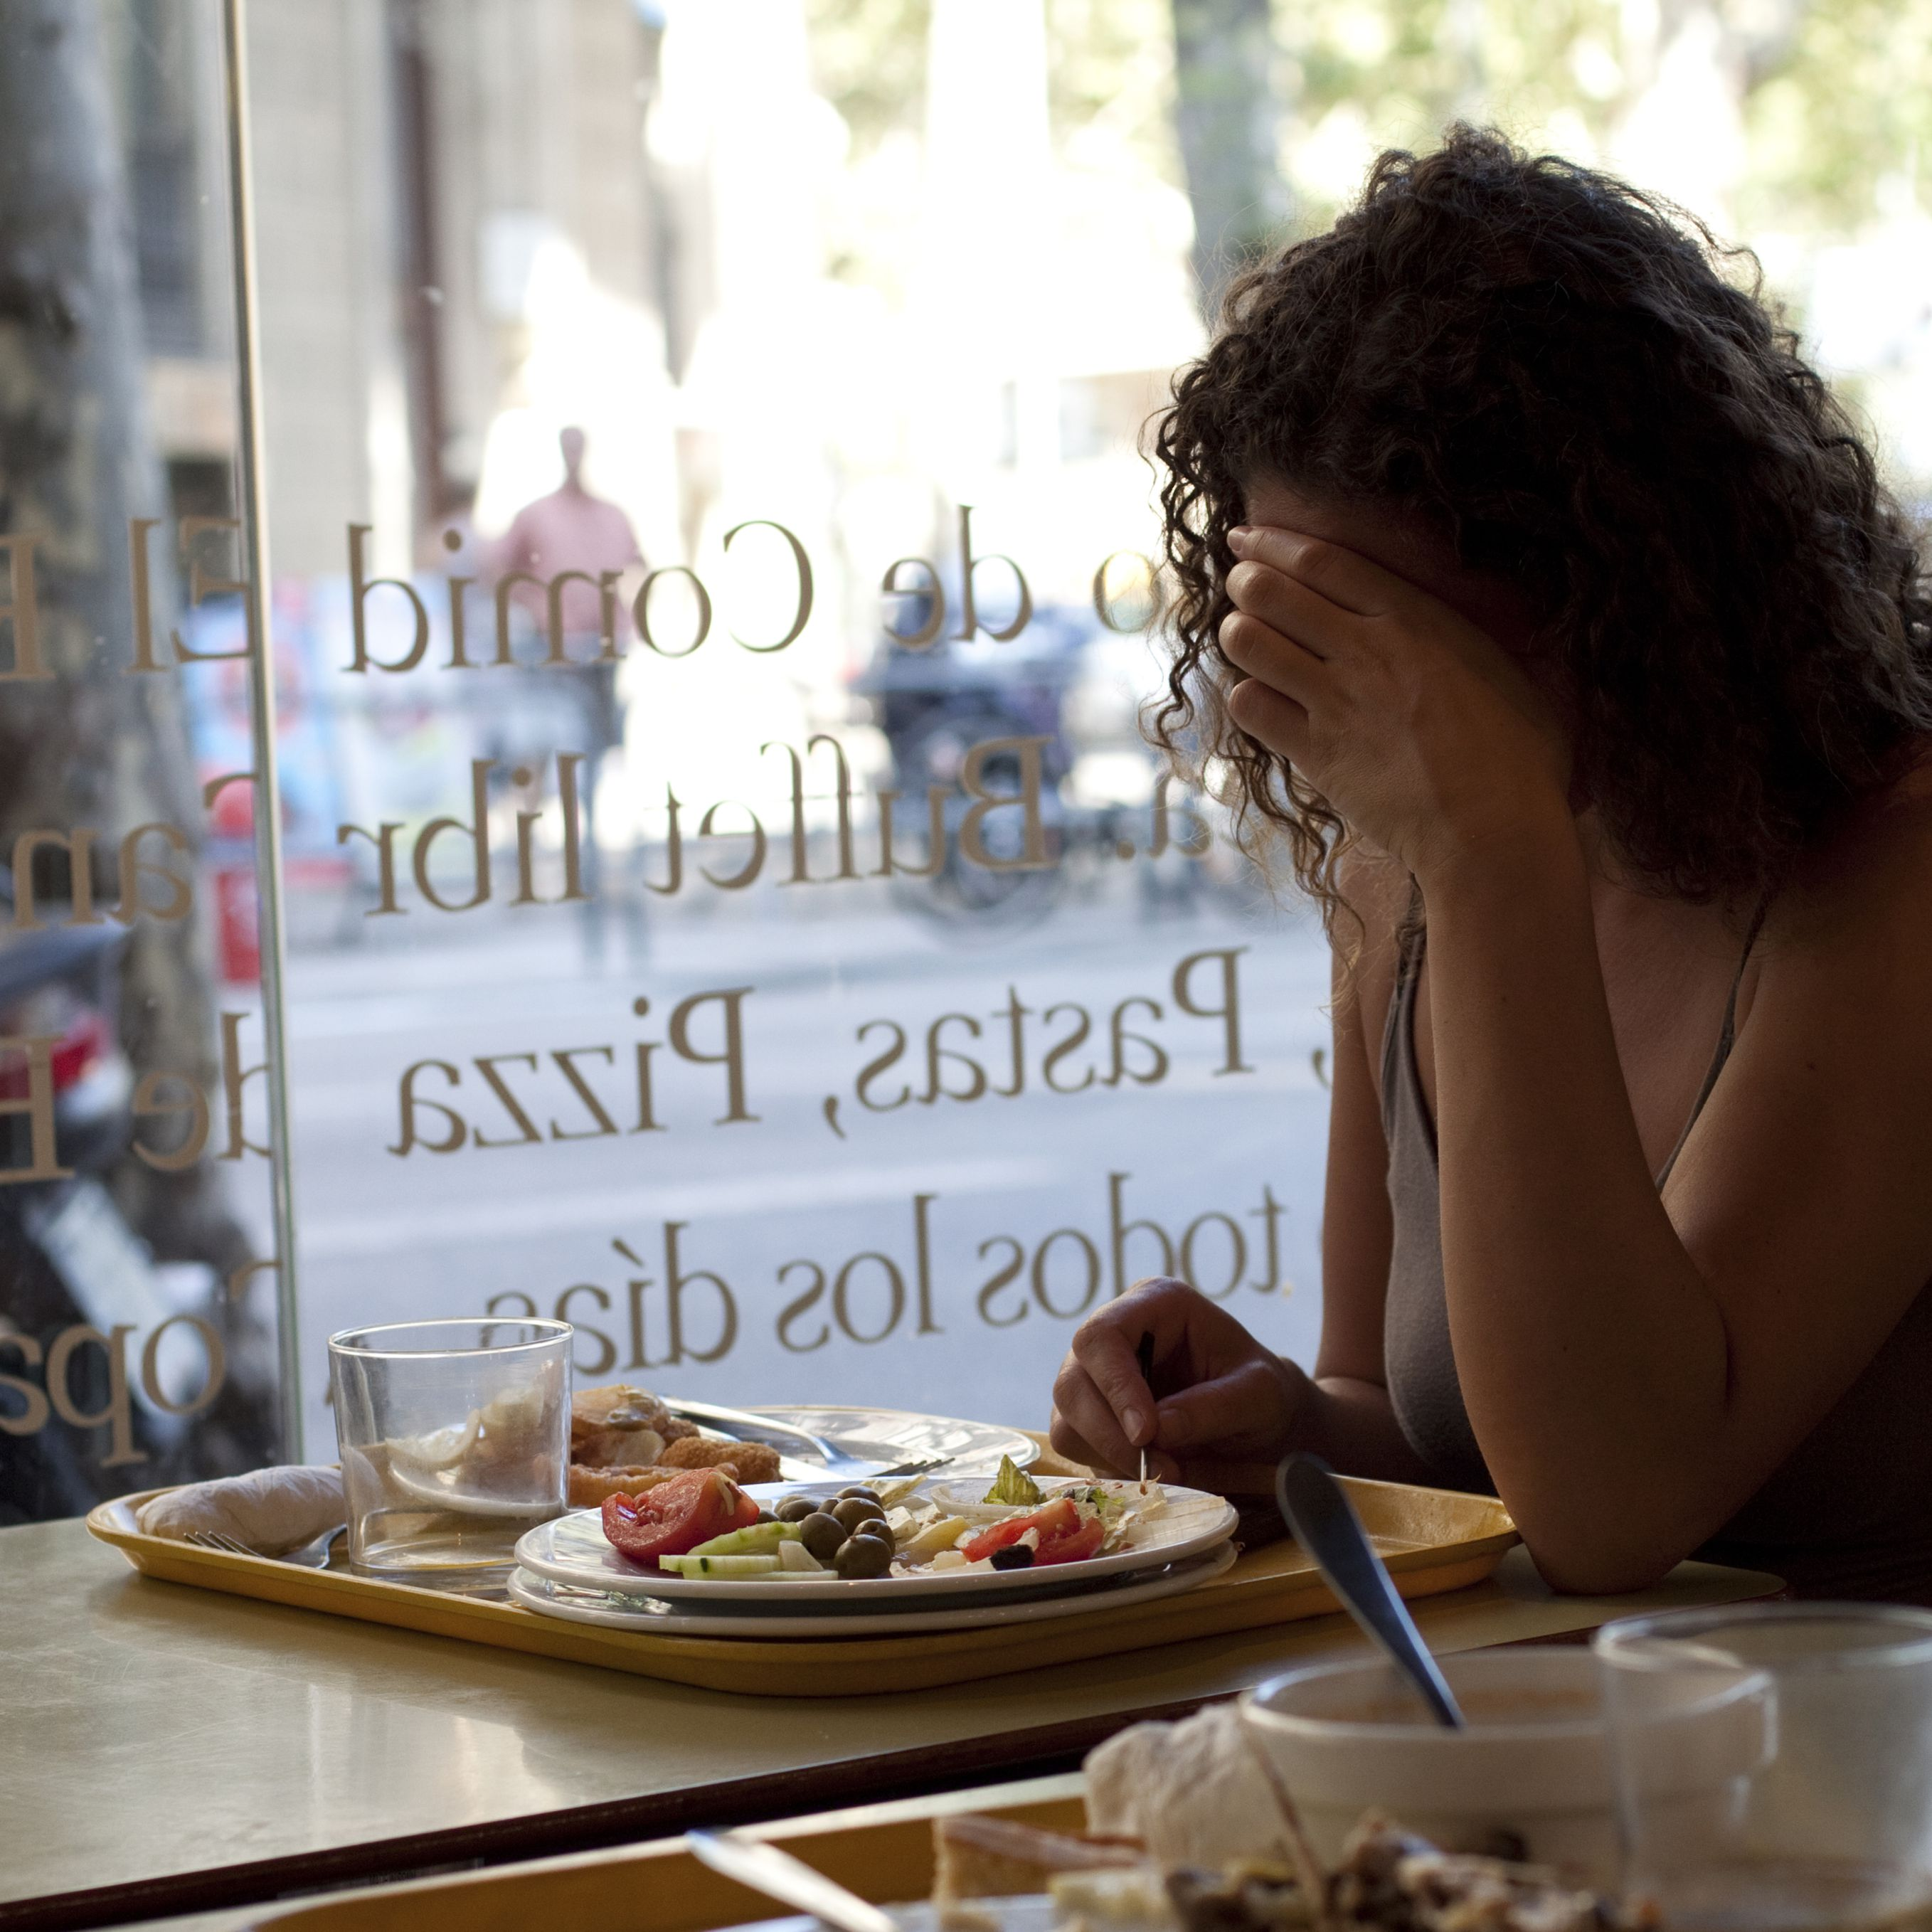 The Connection Between Gluten and Bipolar Disorder